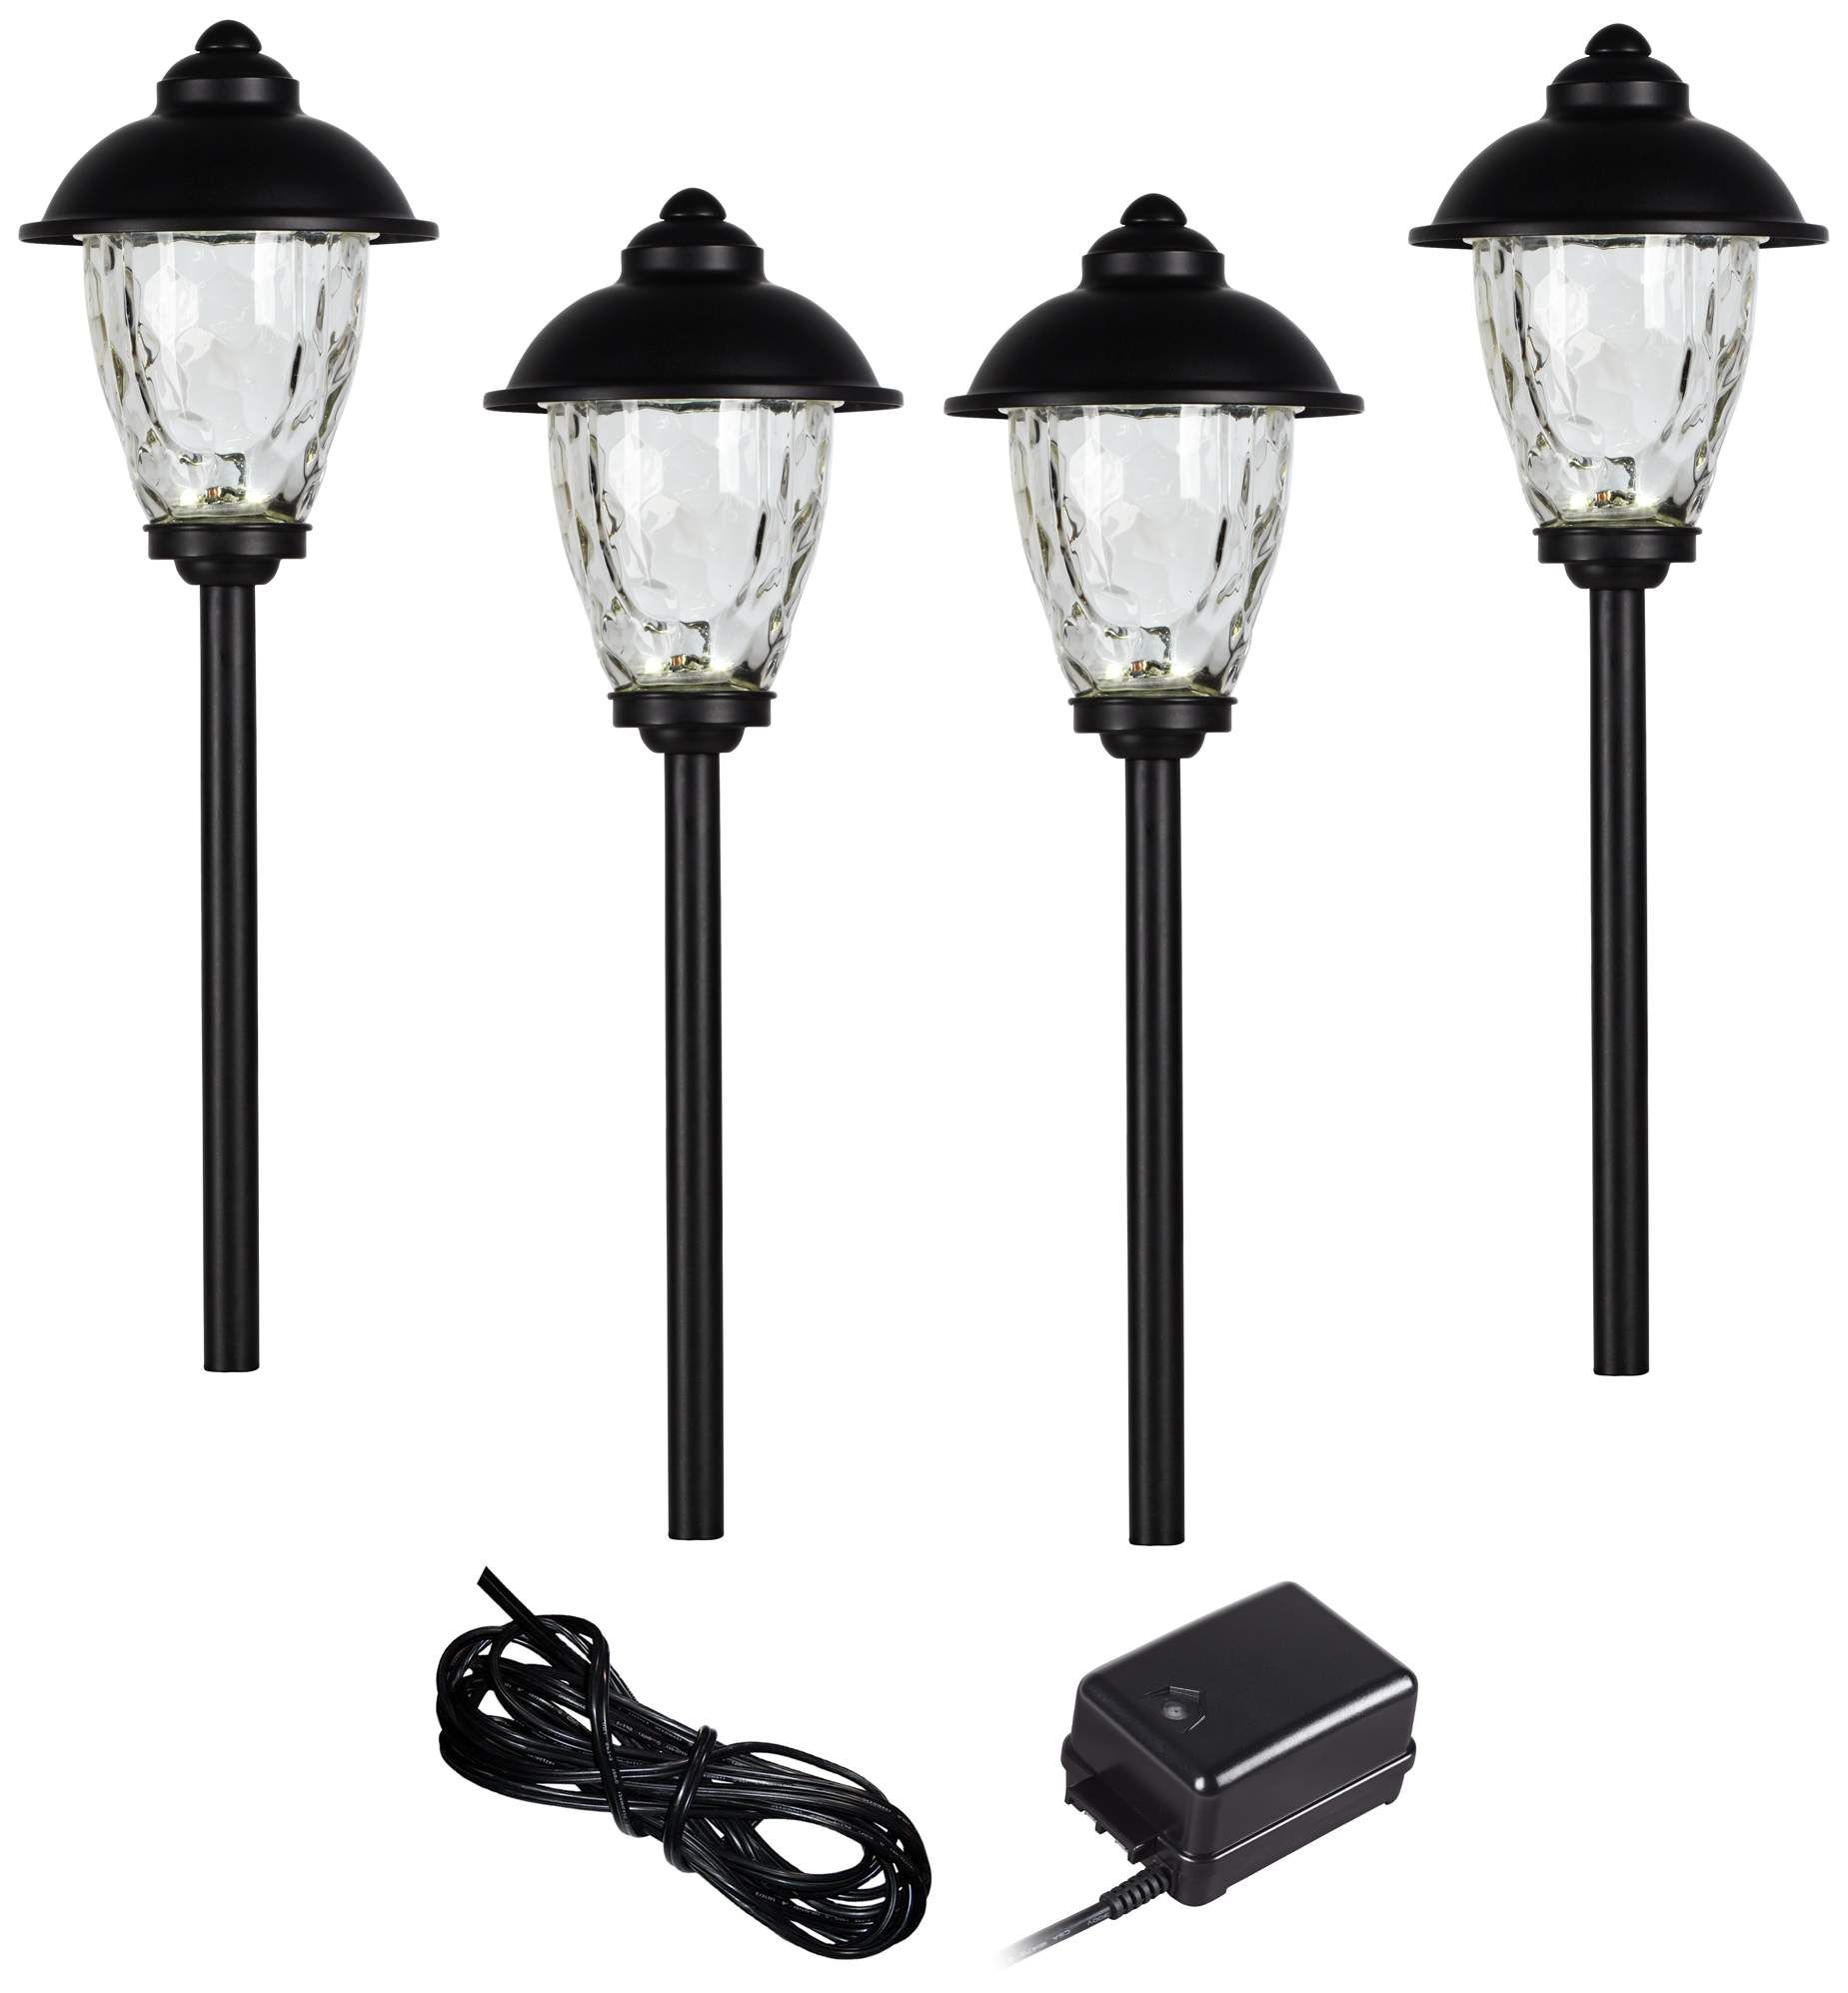 Landscape Lighting Concord 6 Piece Black Complete Led Landscape Lighting Set Led Landscape Lighting Landscape Lighting Kits Landscape Lighting